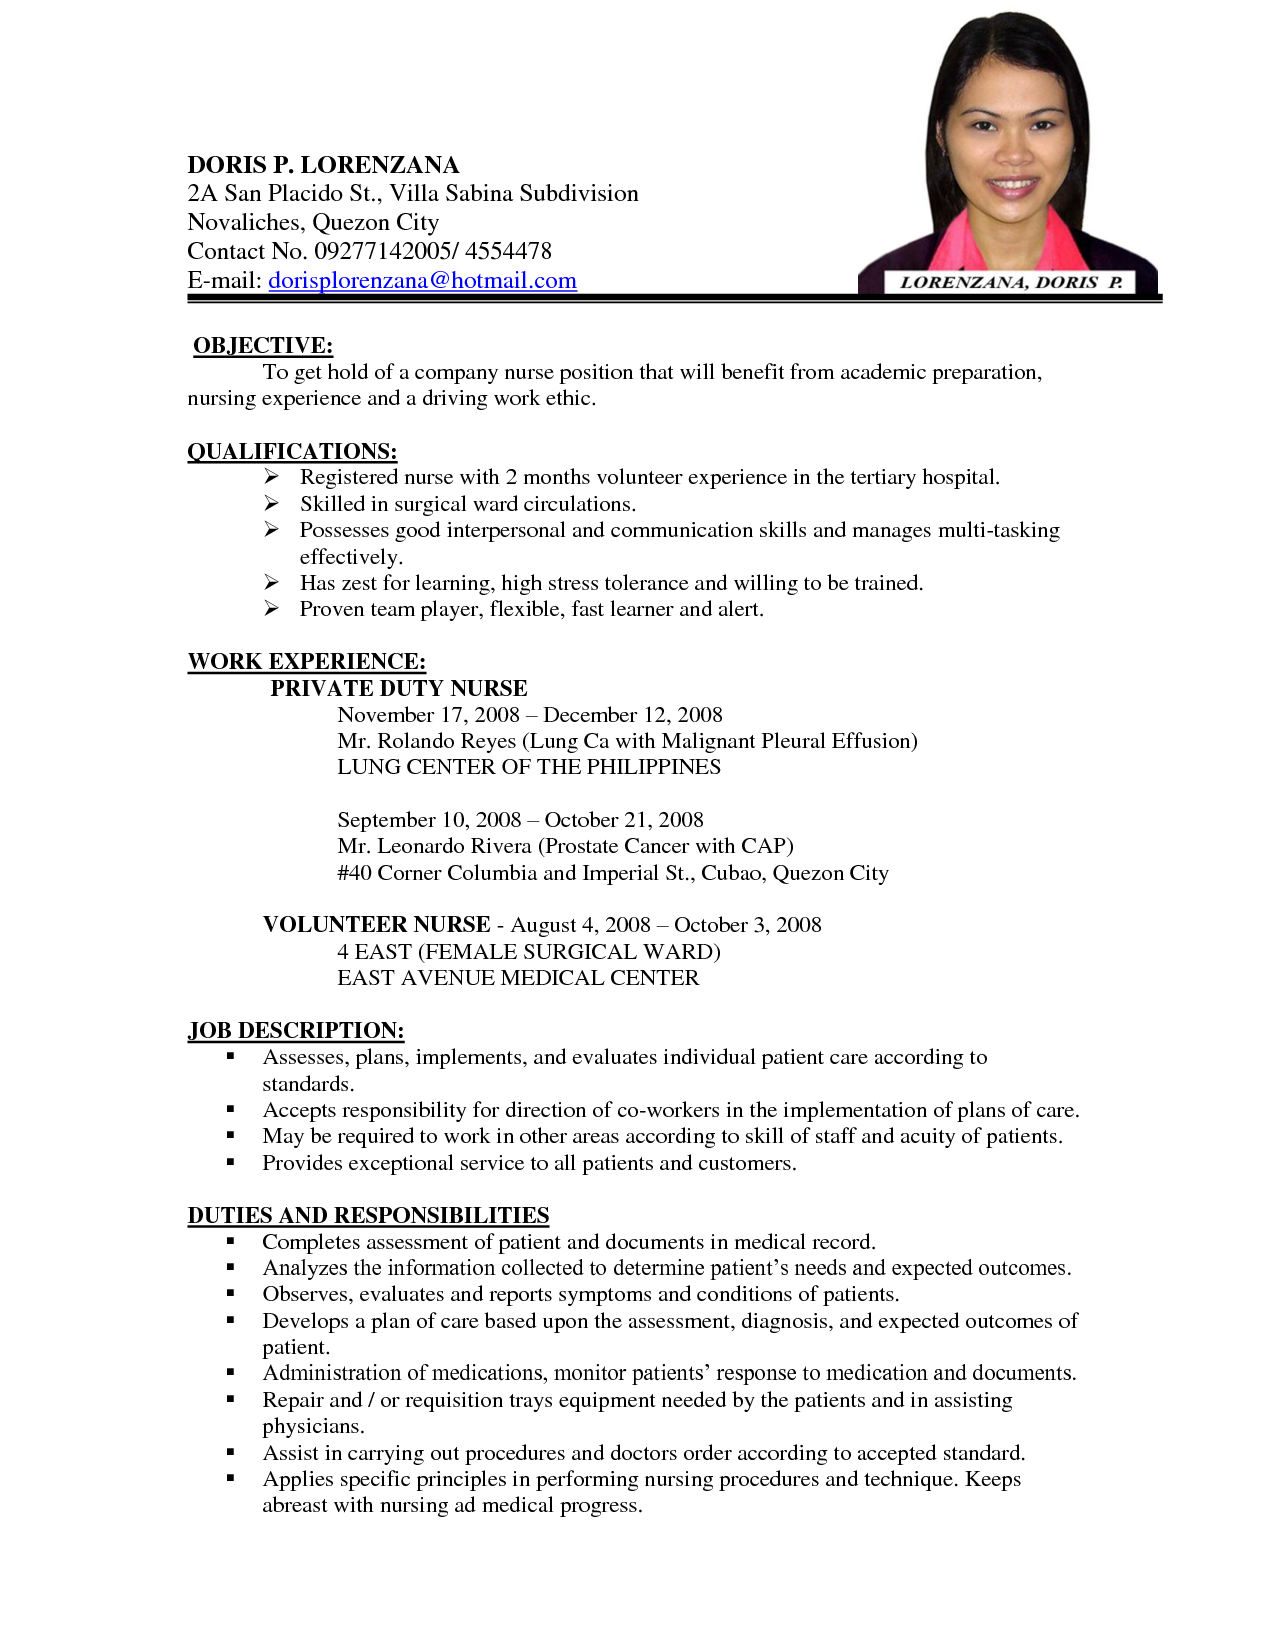 Resume Curriculum Vitae Examples For Nurses nursing curriculum vitae examples google search search